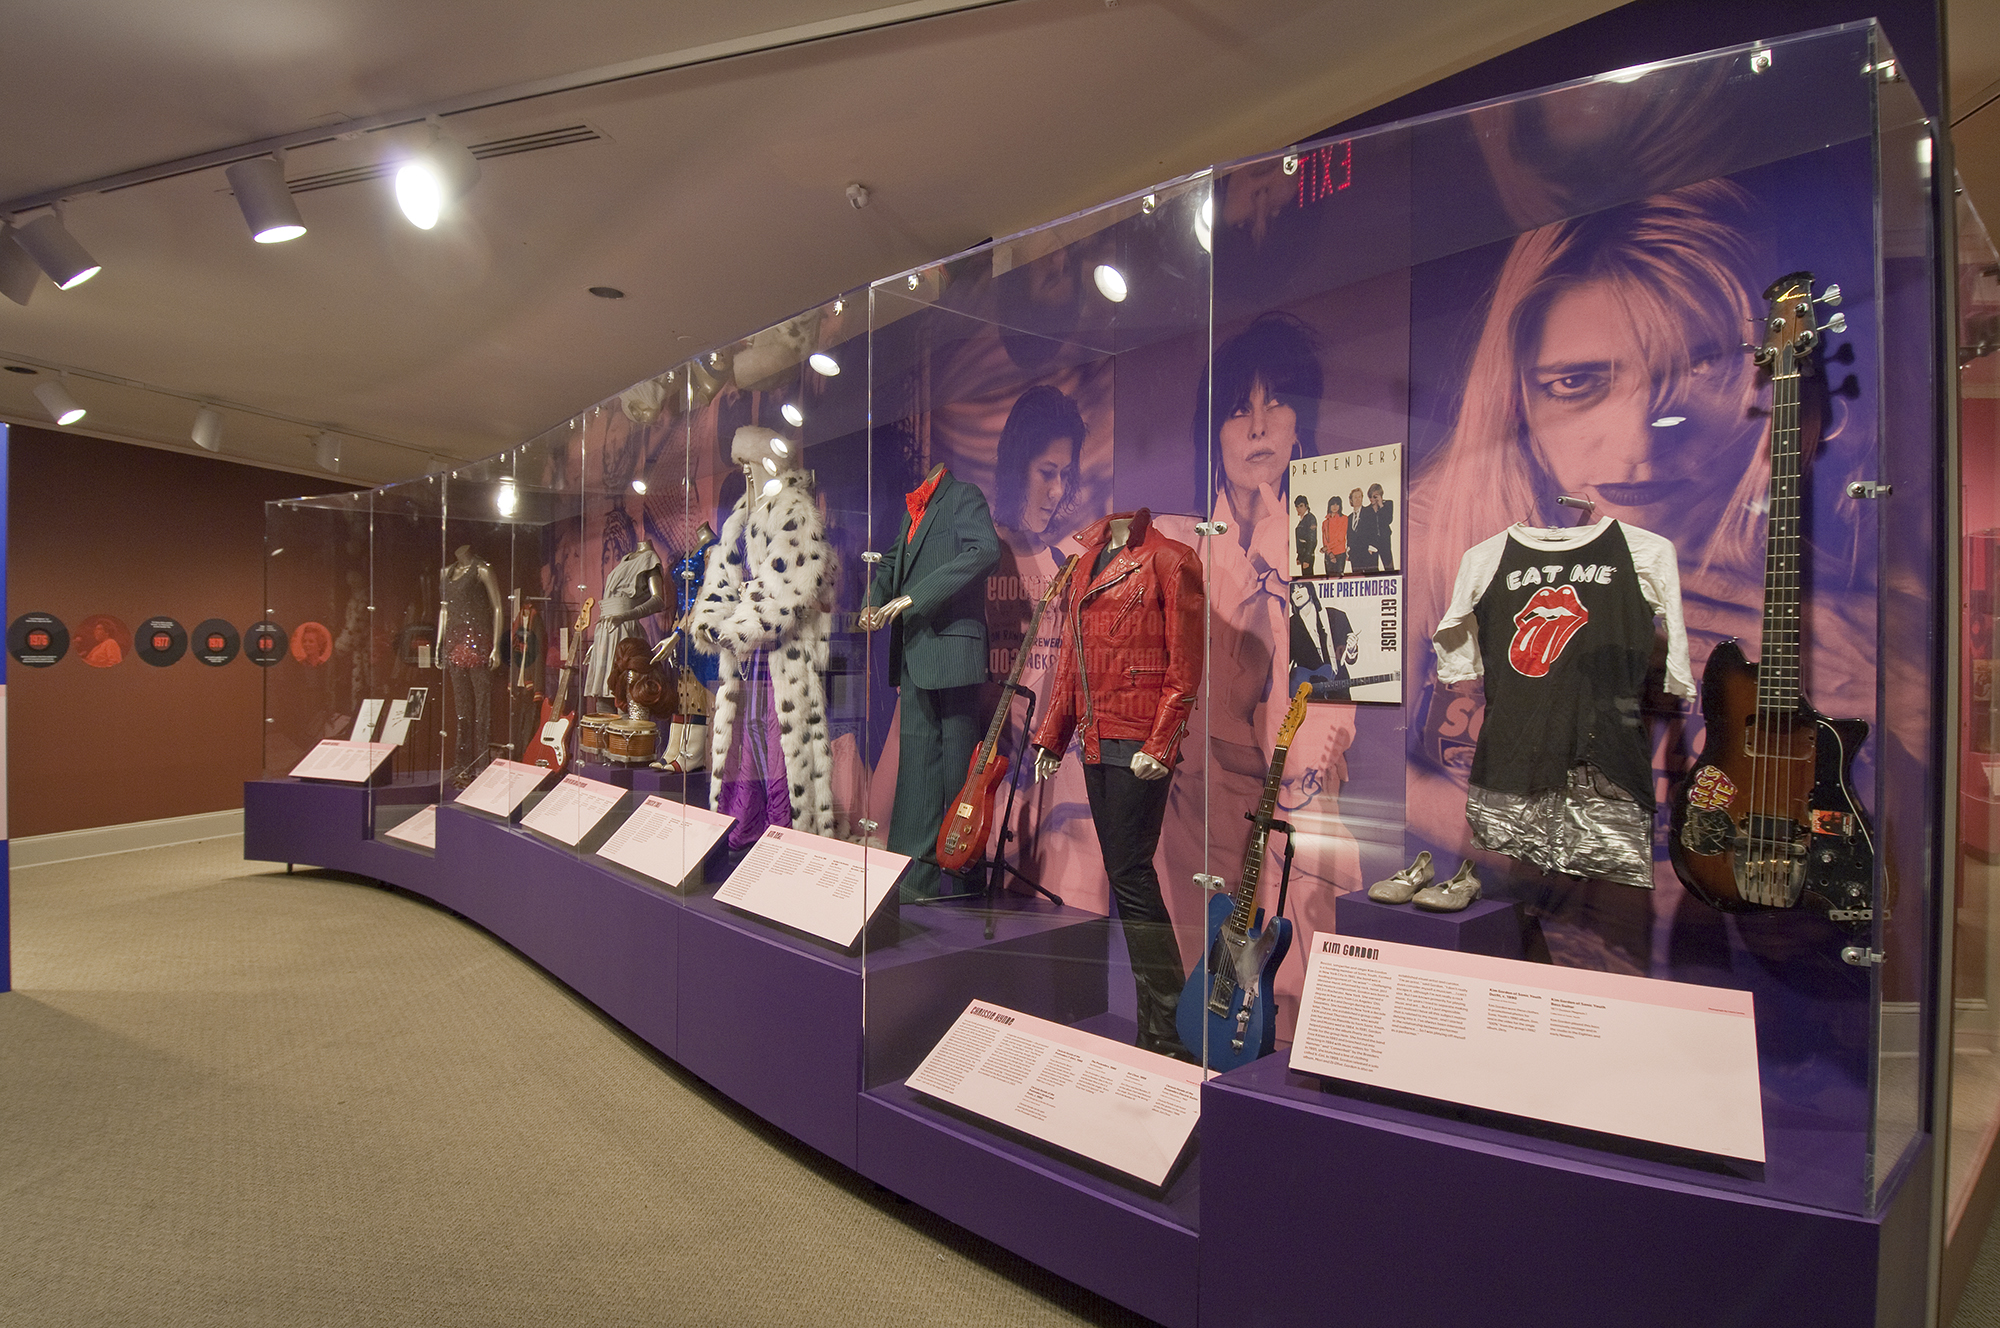 Gallery view showing a display case full of costumes and photo murals of women singers in the background.